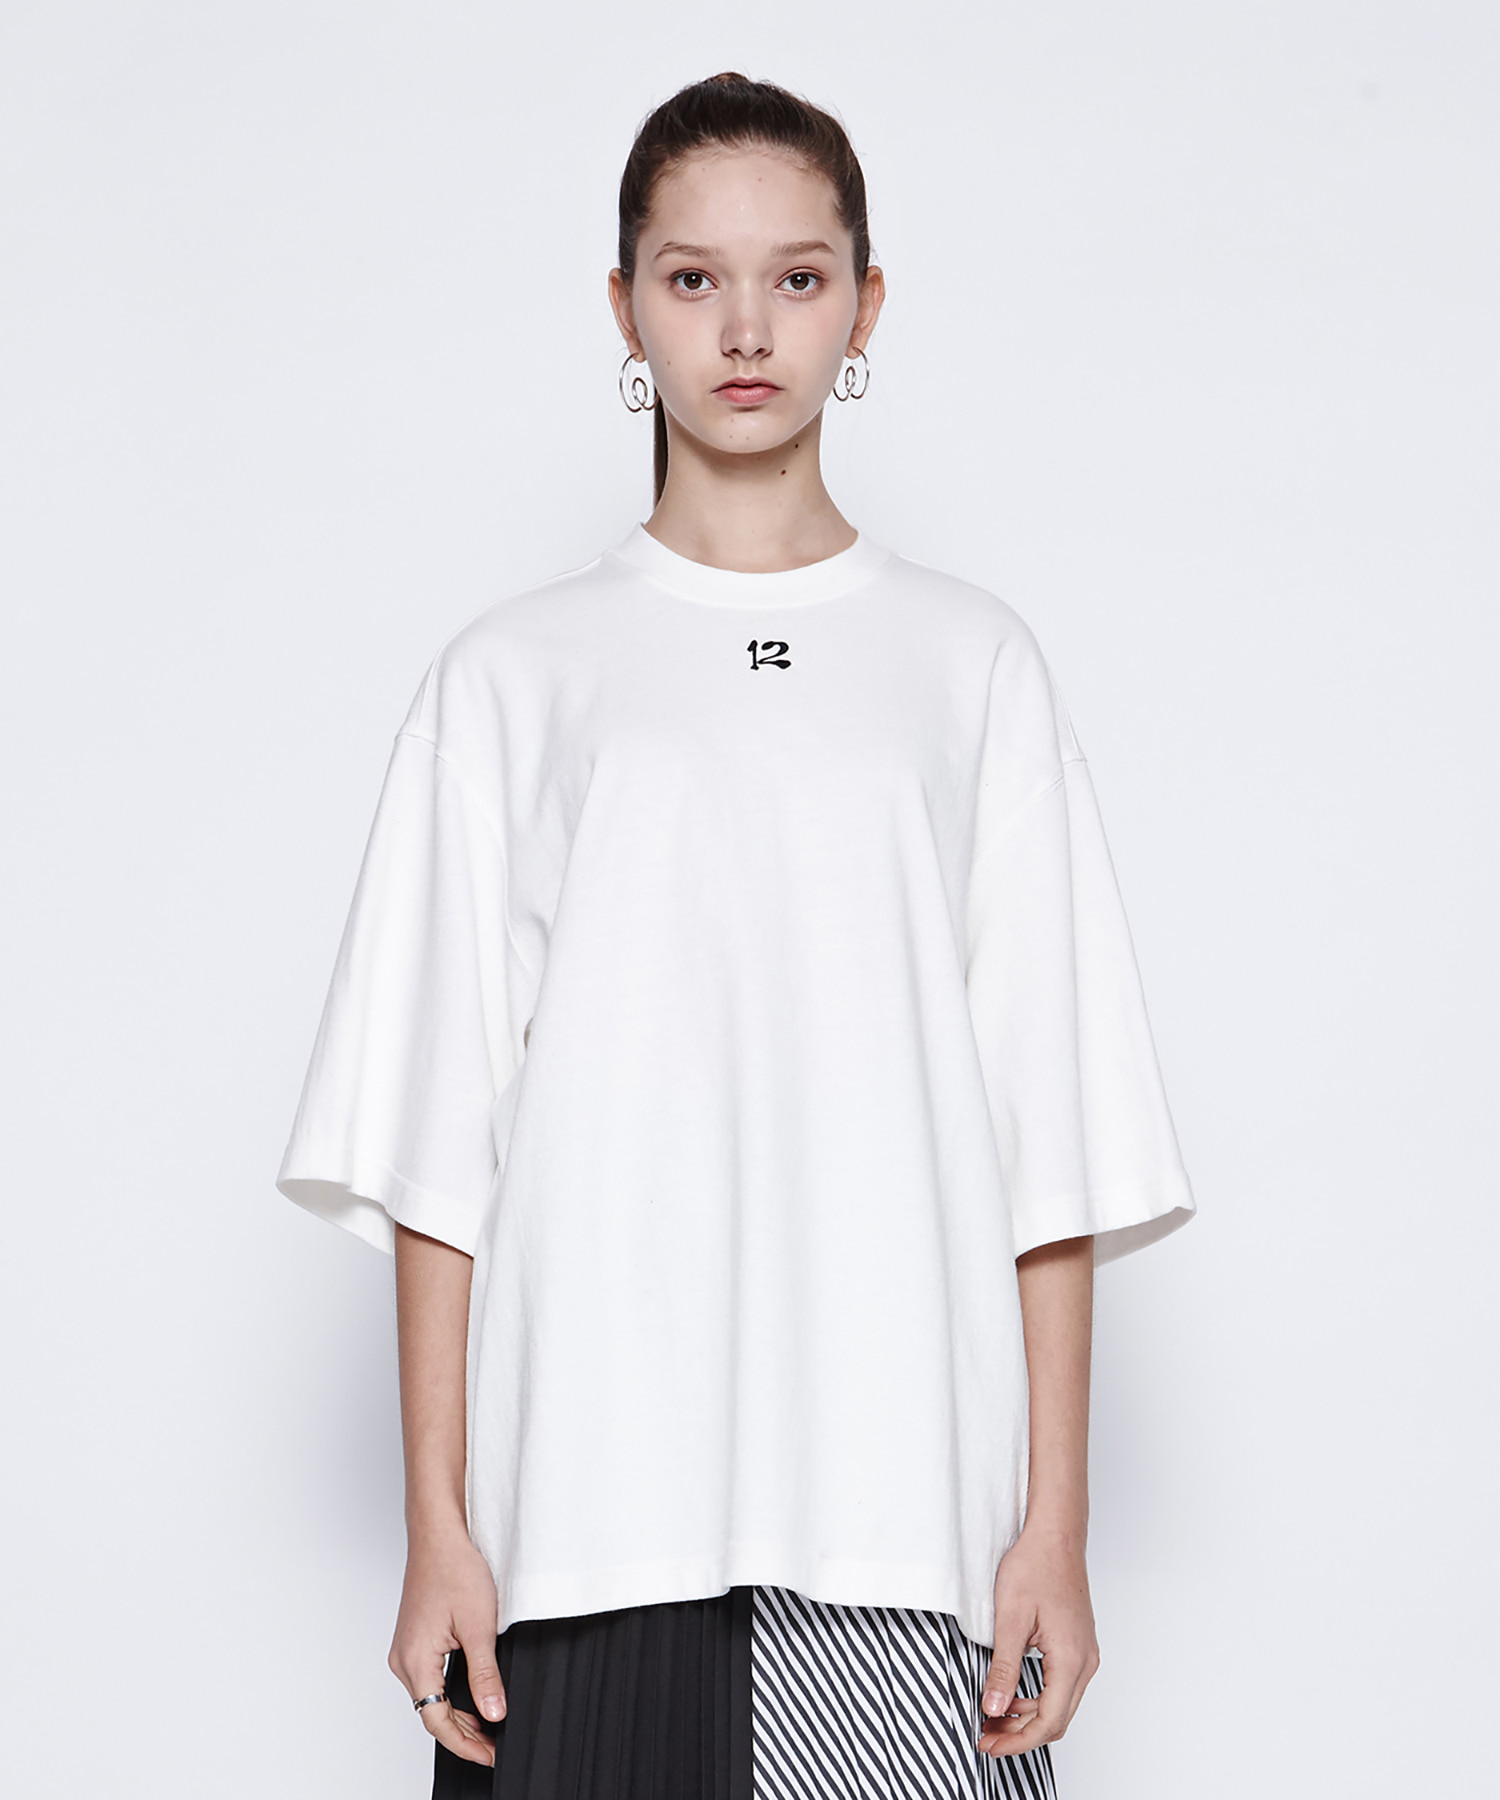 [DGNAK12][30% 세일] 12 Embroidery T-Shirts (WH)